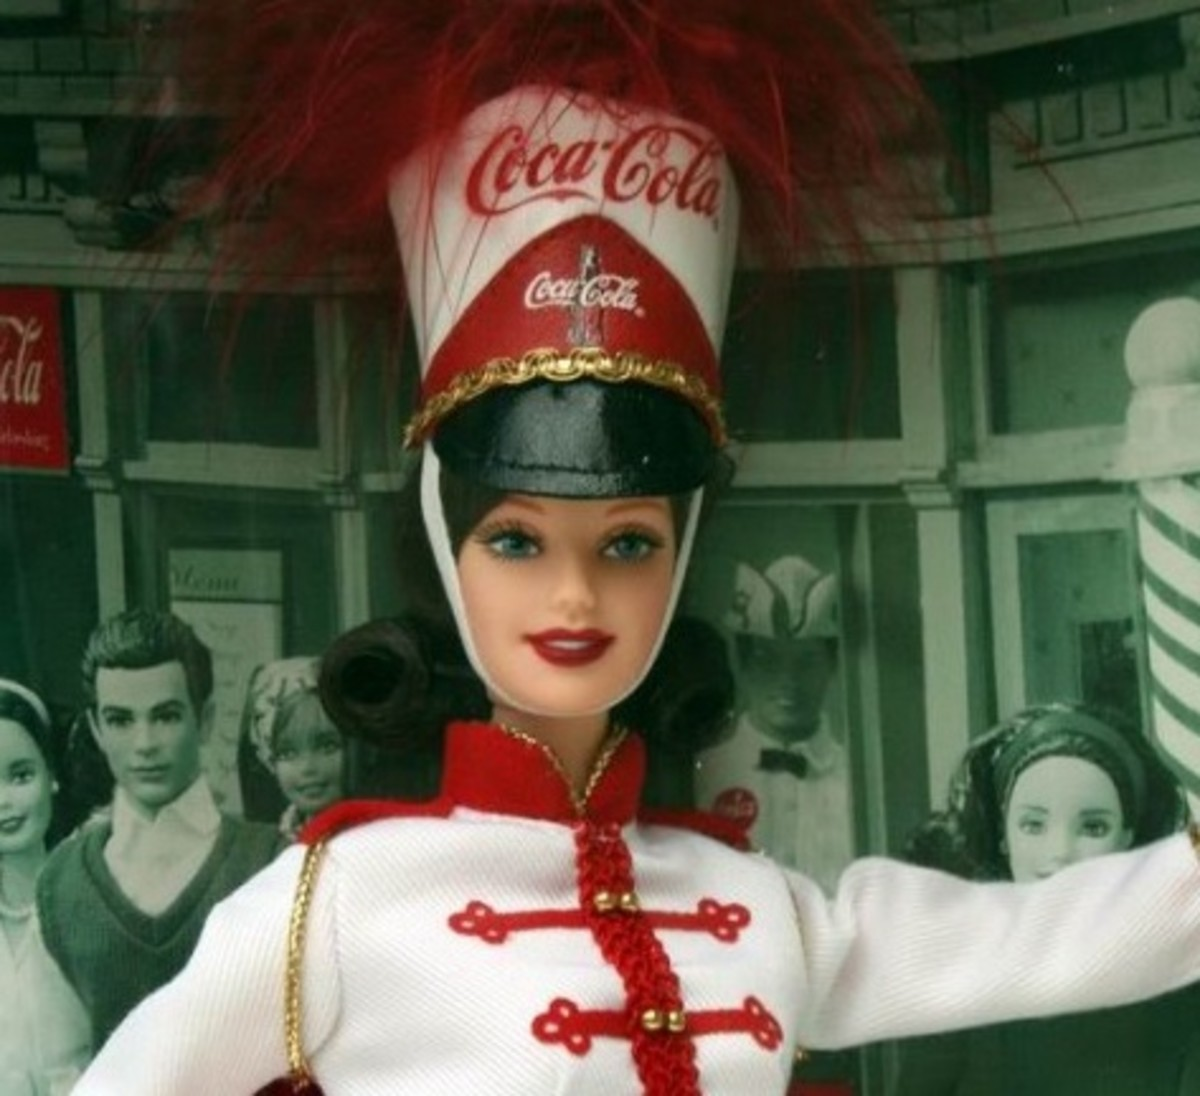 Top Toys - Great Gifts Coca-Cola Dolls - Barbie and Madame Alexander| Buy Online